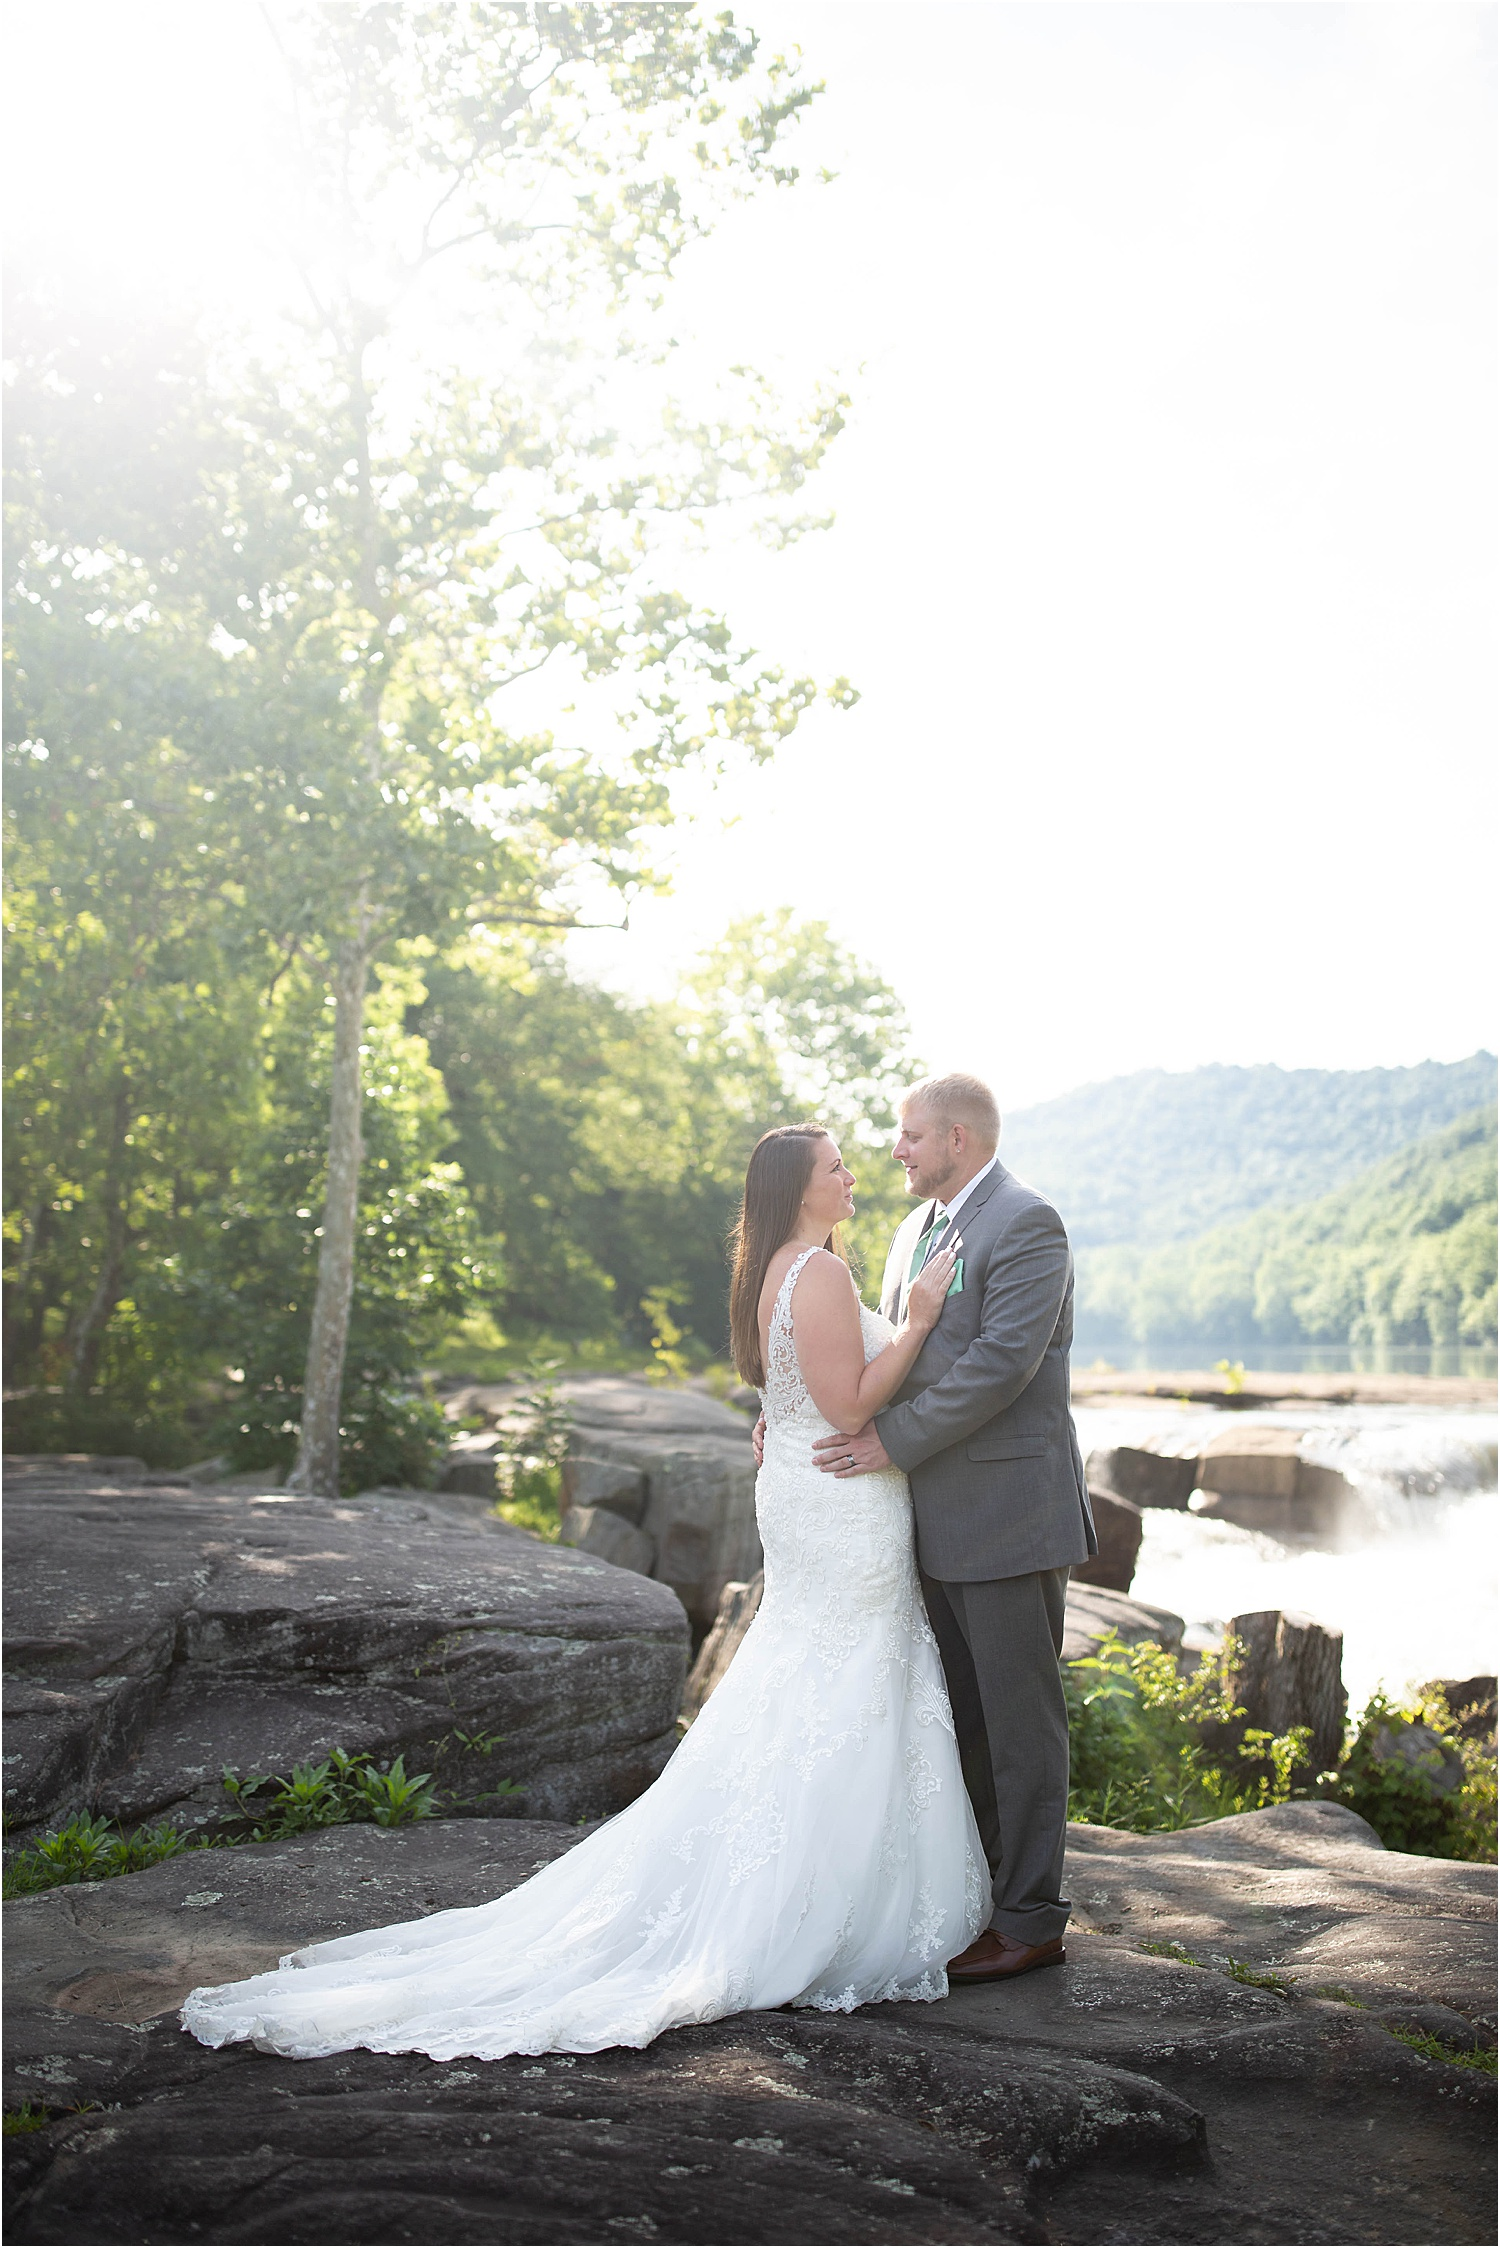 maryn graves productions somd wedding photographer va wedding photographer dc wedding photographer southern bride wv weddings wv bride